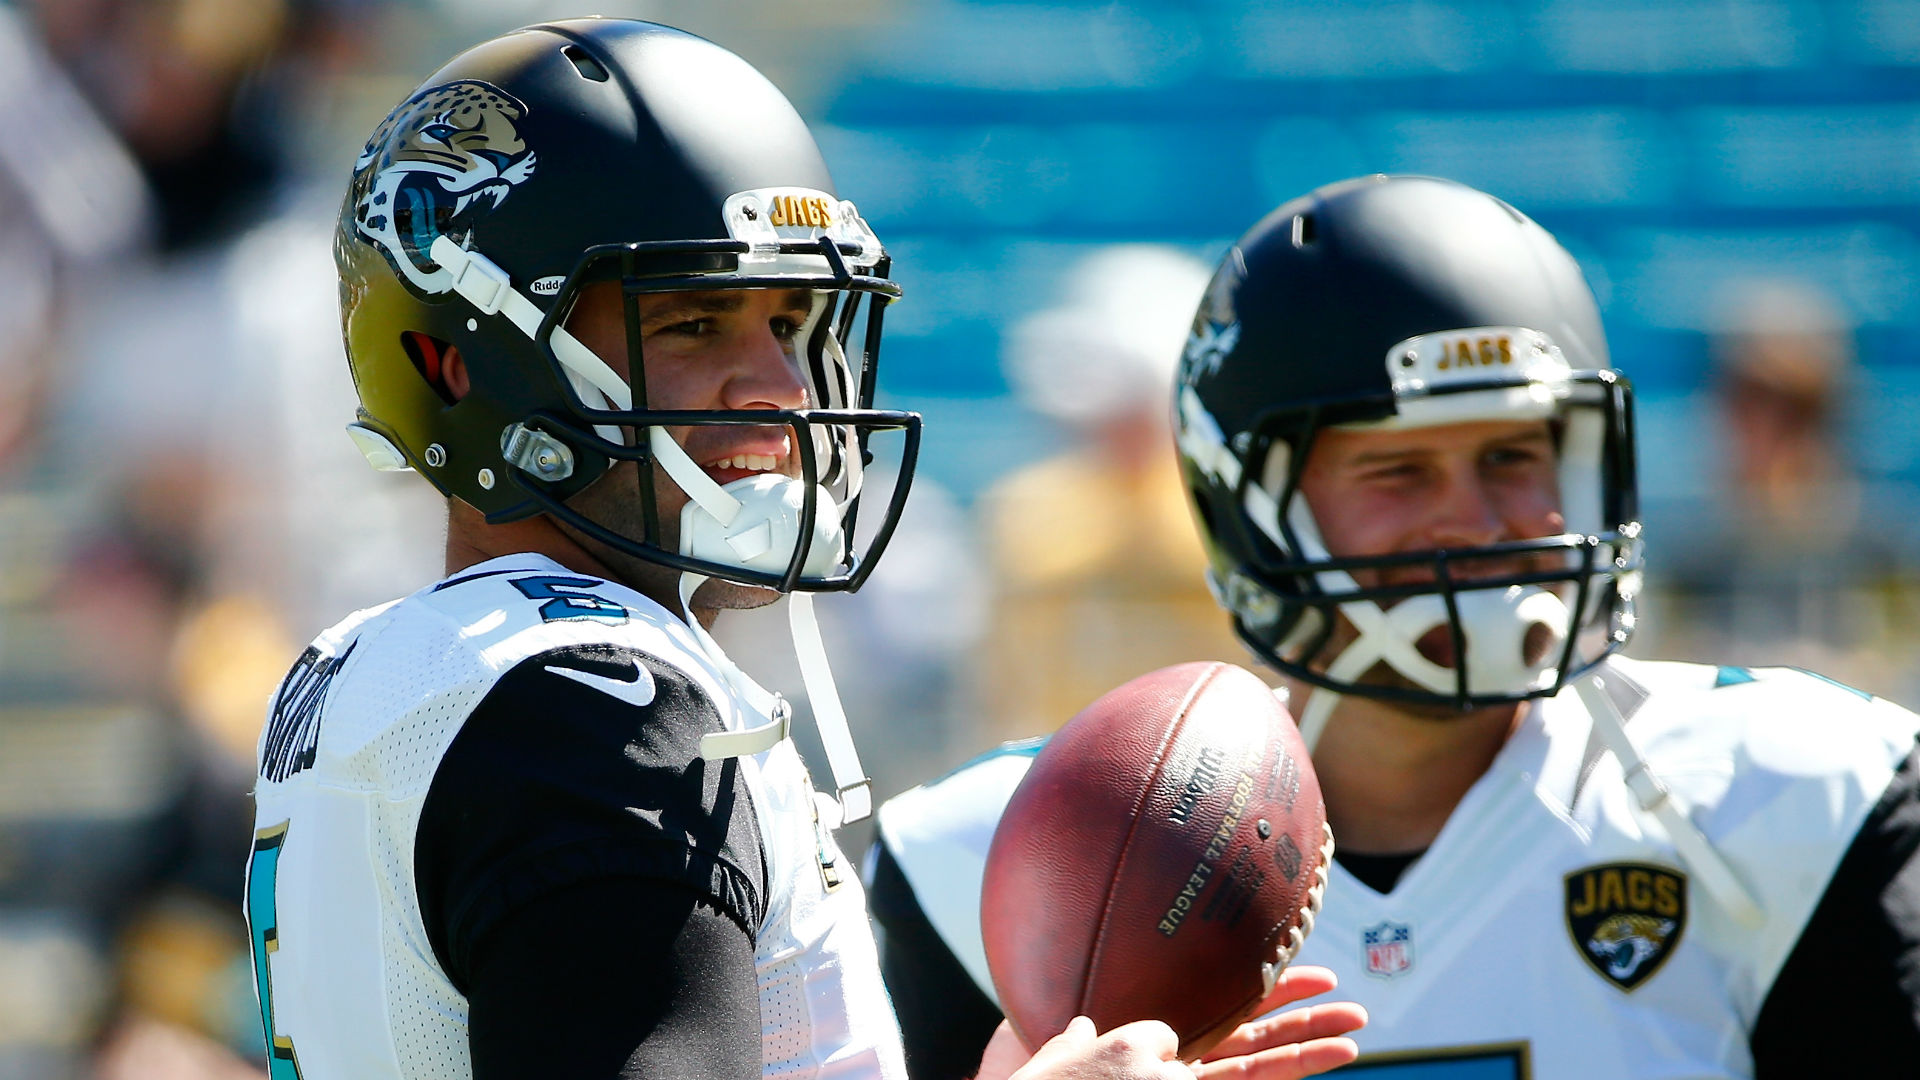 Doug Marrone opens Jags' QB race between Blake Bortles, Chad Henne